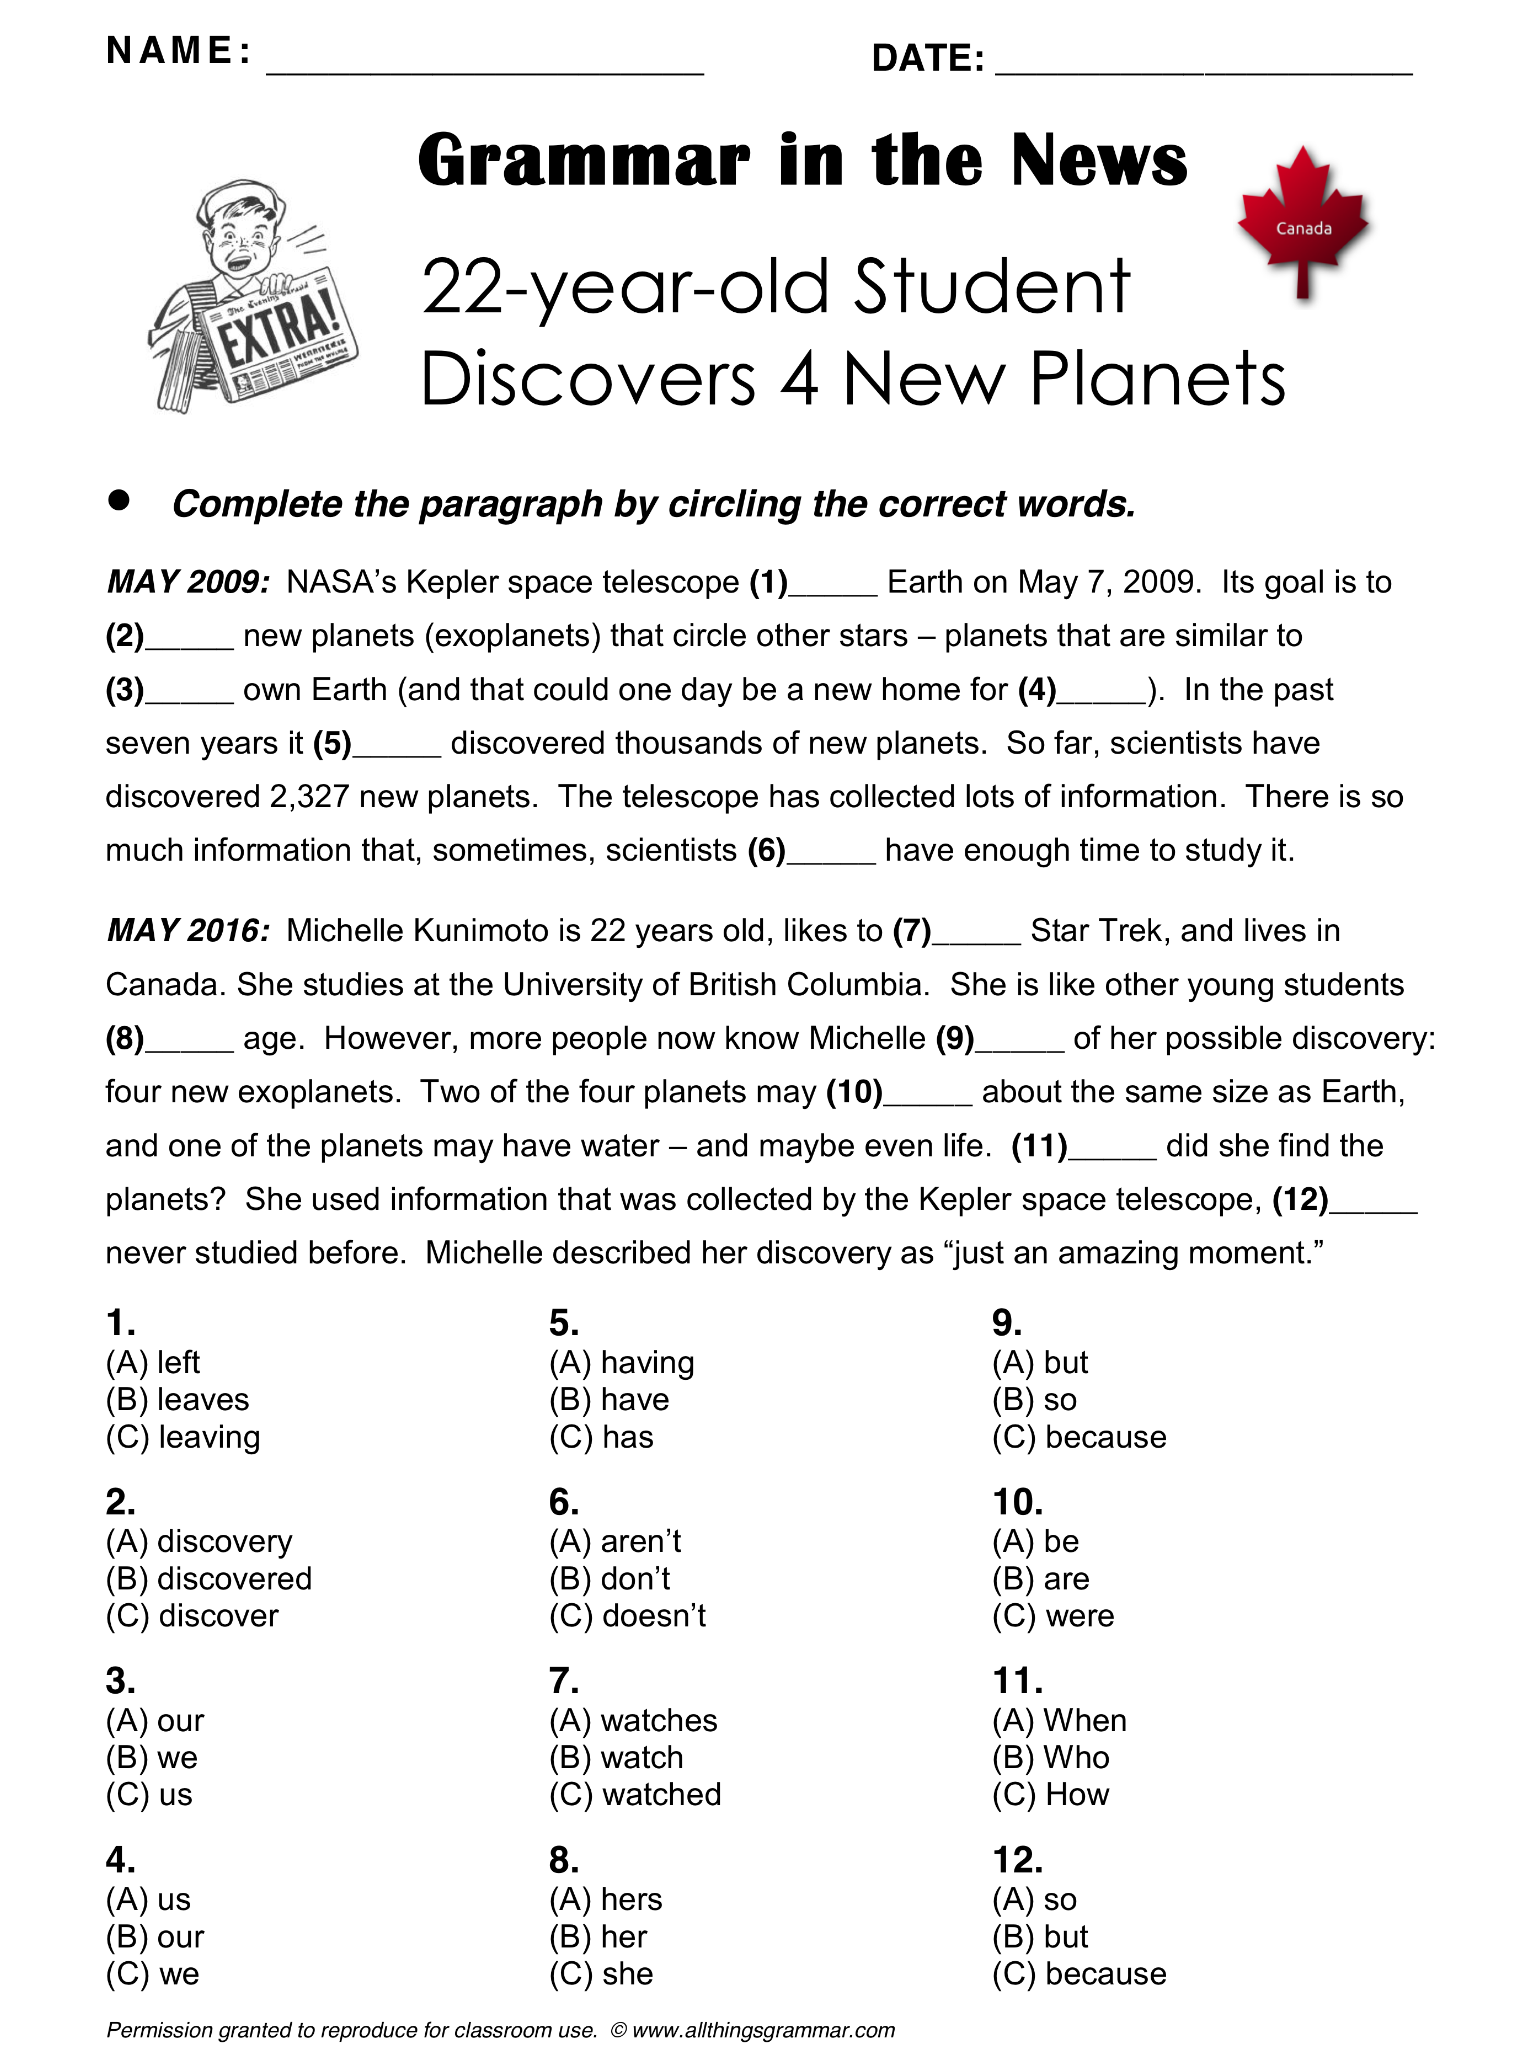 English Grammar in the News, 22-year-old Student Discovers 4 New Planets, Grammar Mixed (includes present perfect and possessive adjectives) http://www.allthingsgrammar.com/student-discovers-planets.html